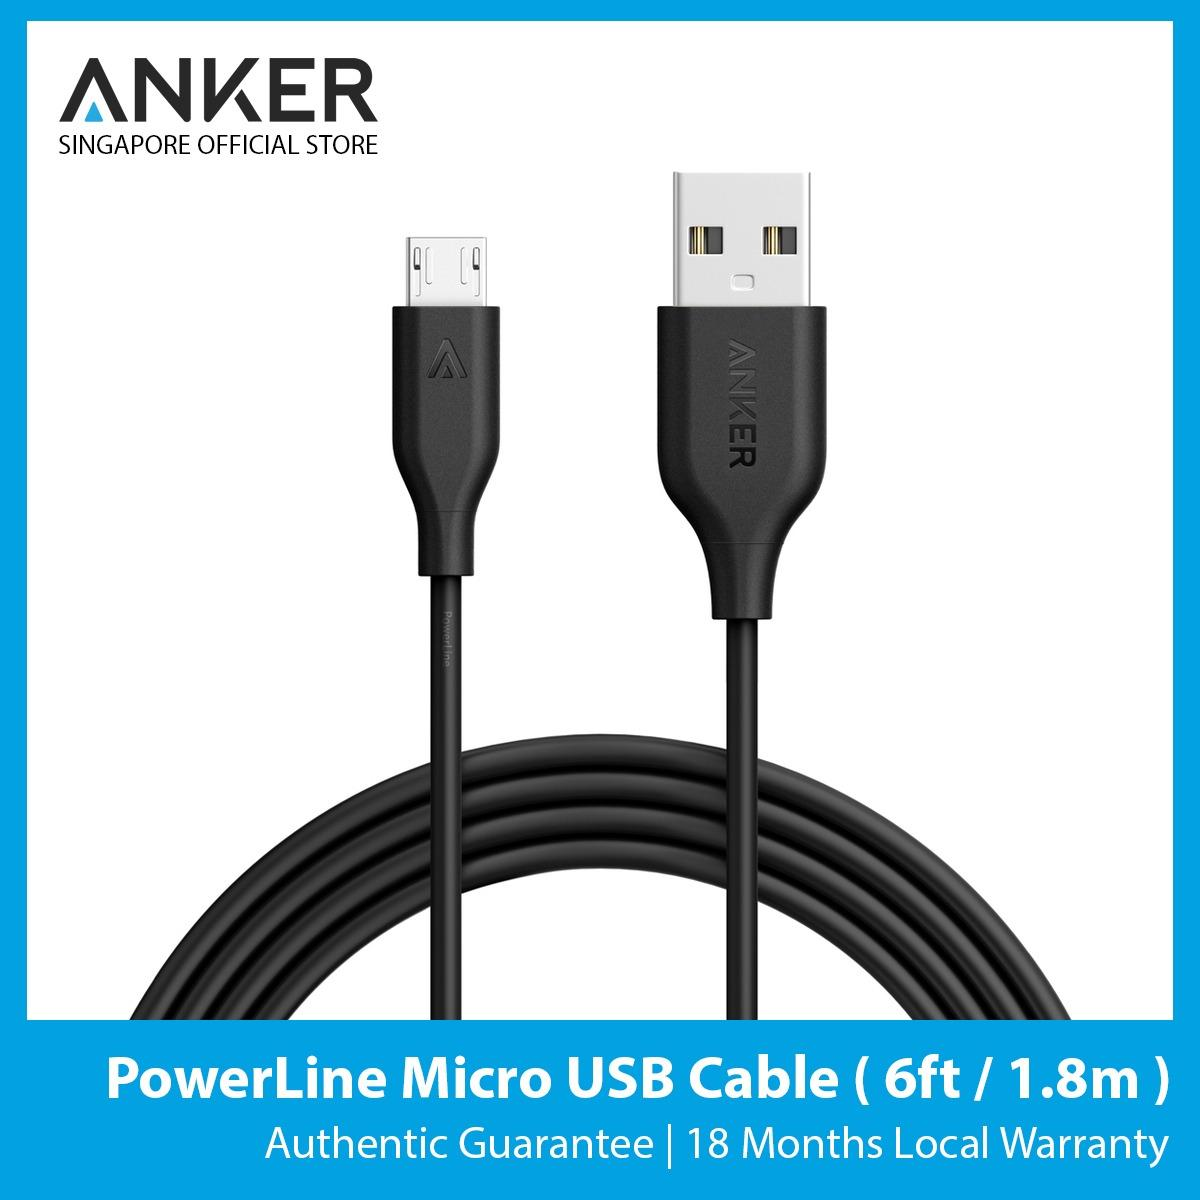 Best Buy Anker Powerline Micro Usb Cable 6Ft